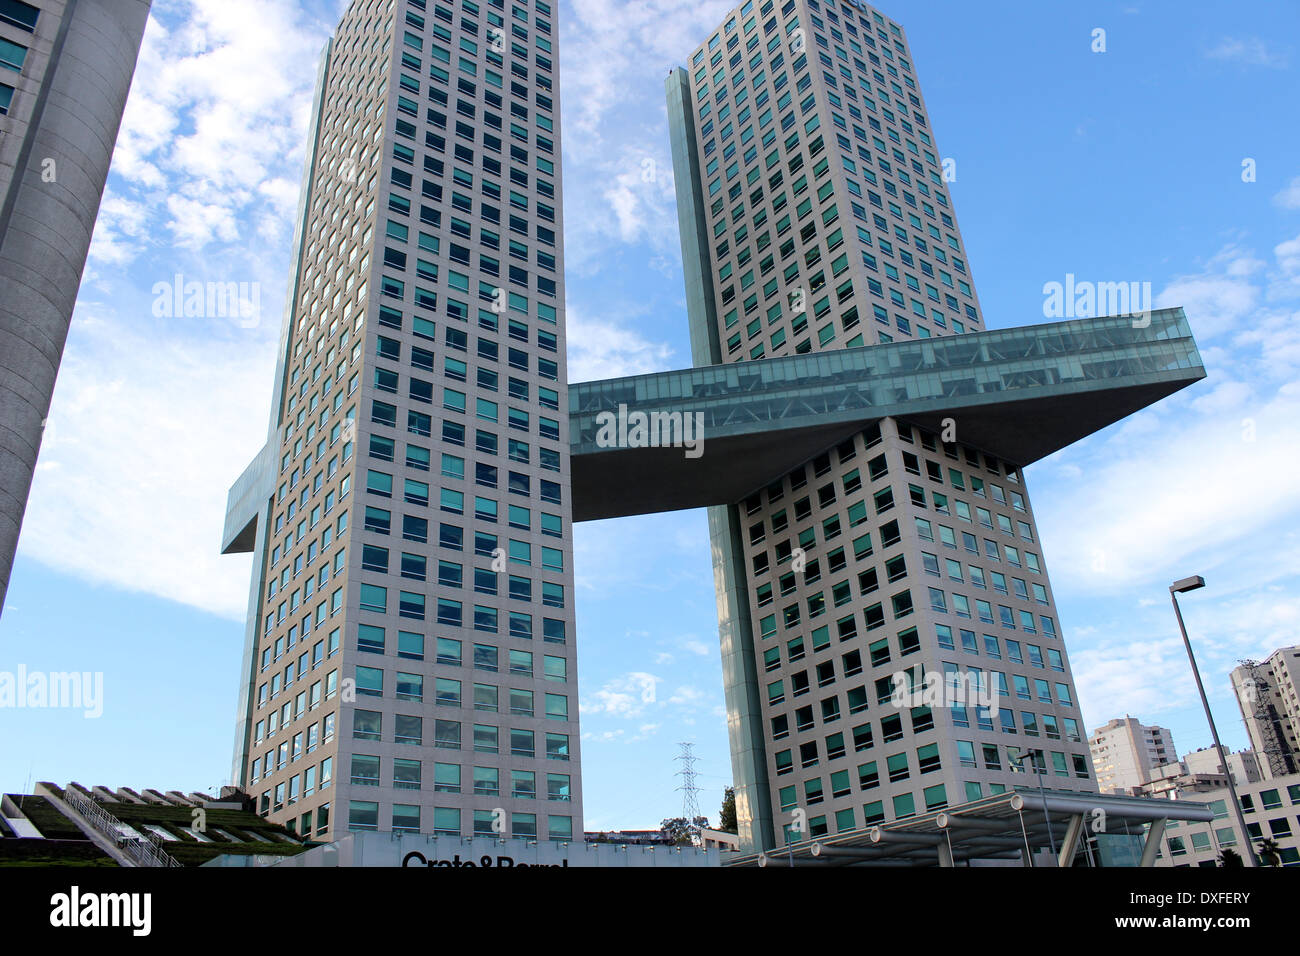 Modern Architecture Mexico modern architecture in mexico city, mexico stock photo, royalty